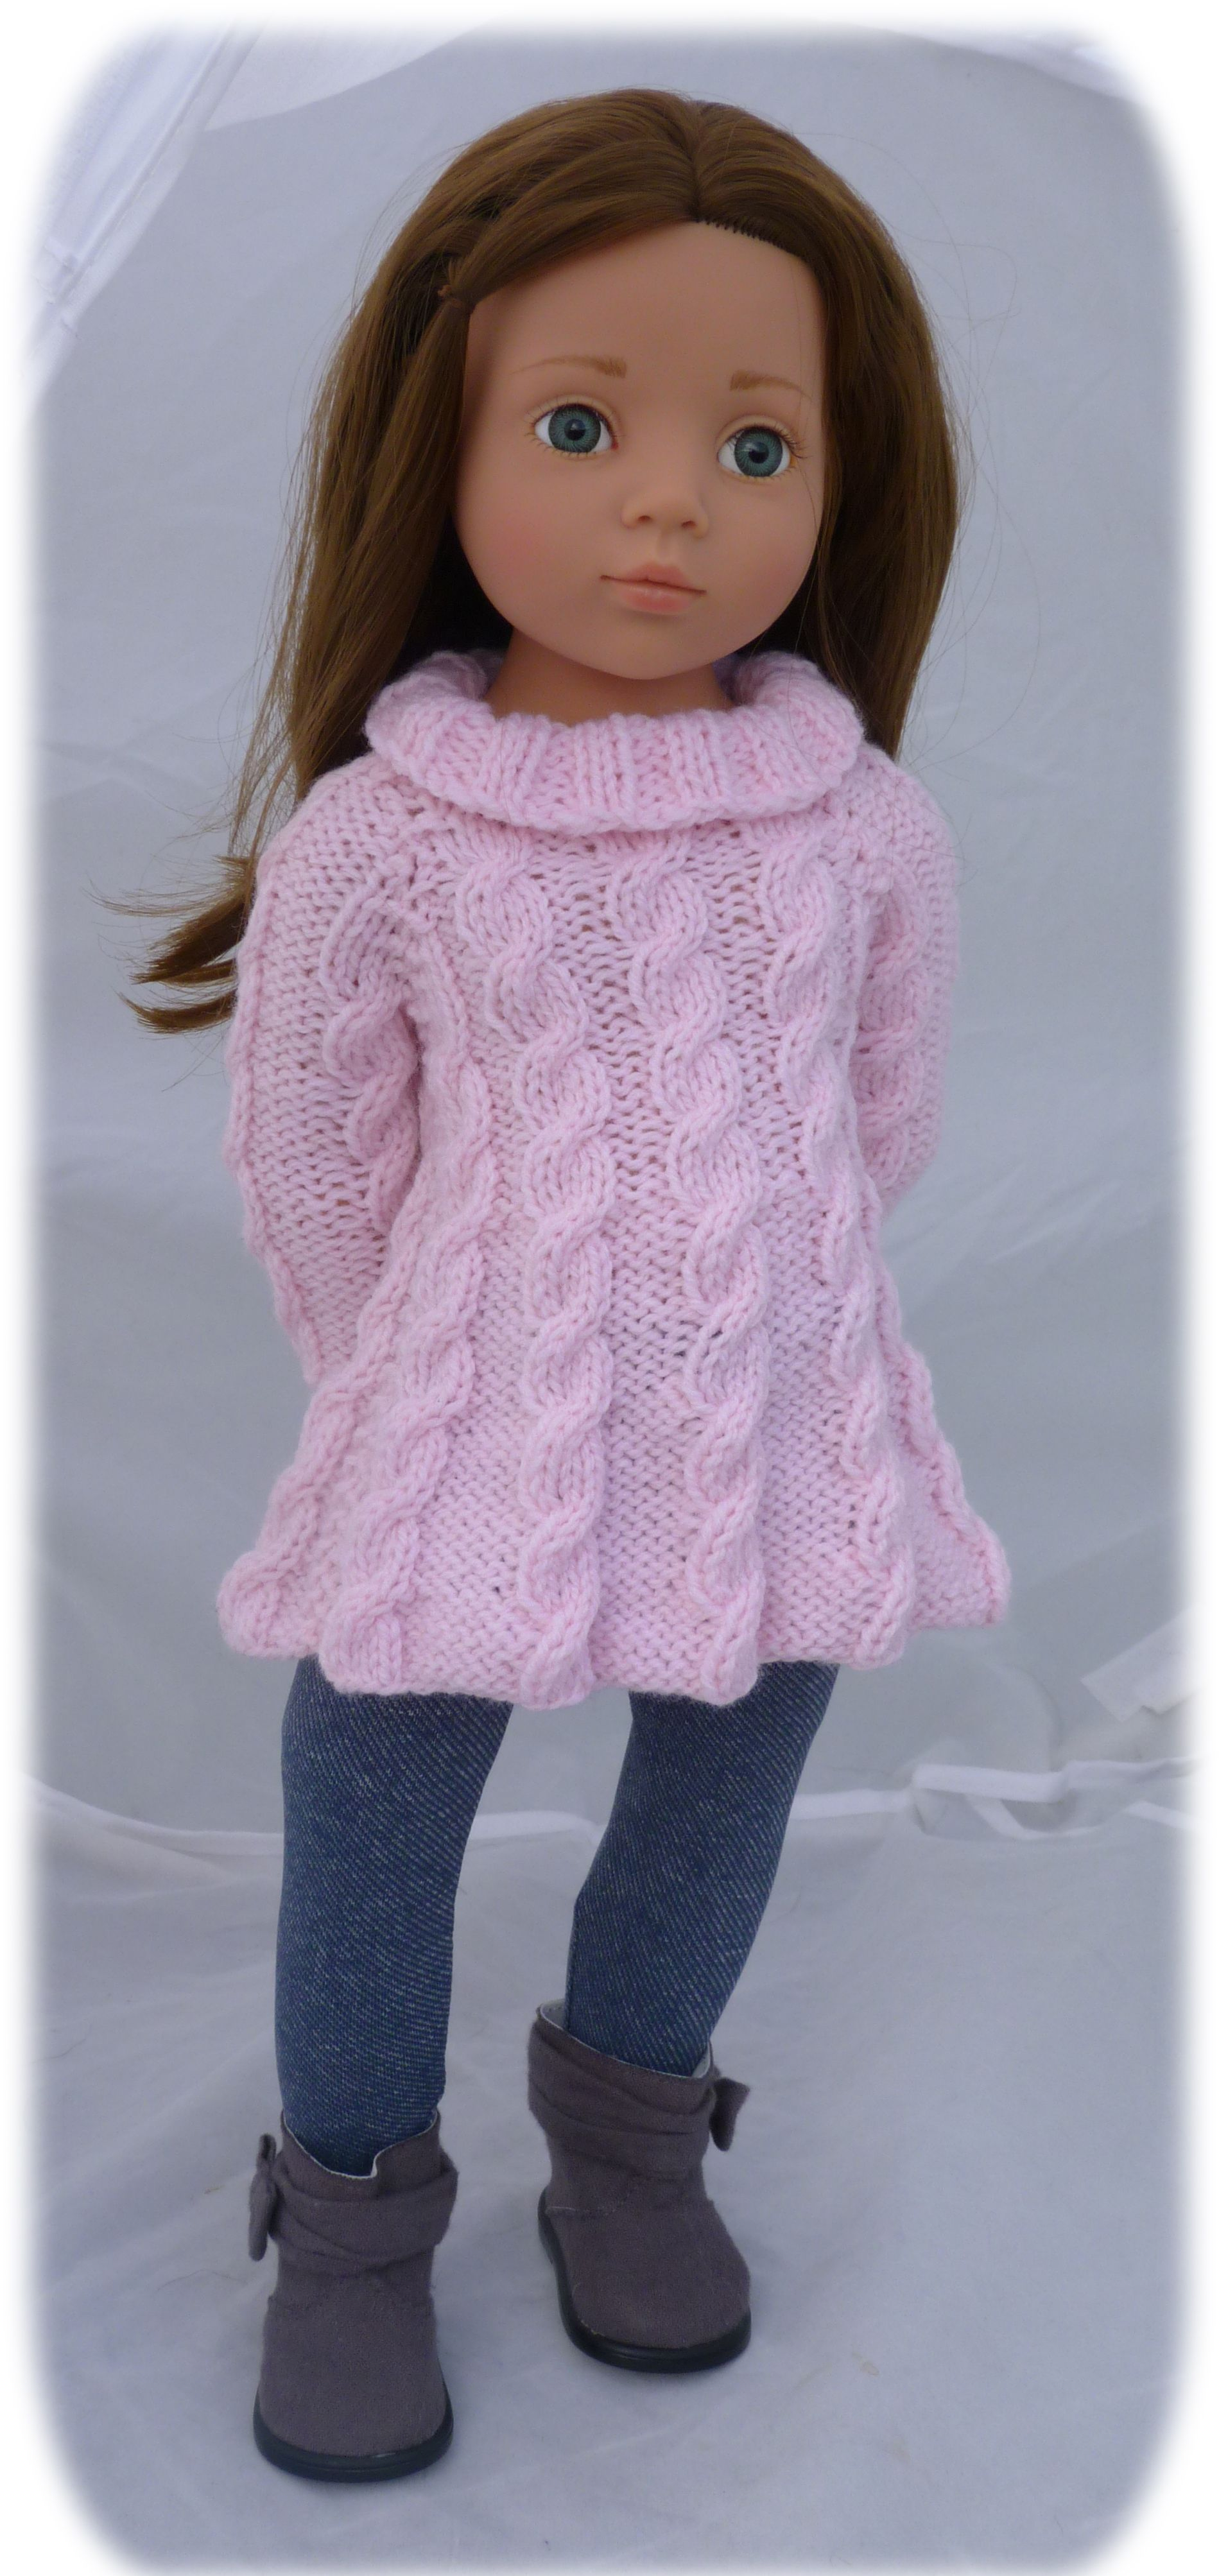 Pin de Sue Thompson en doll knit/crochet | Pinterest | Revistas ...